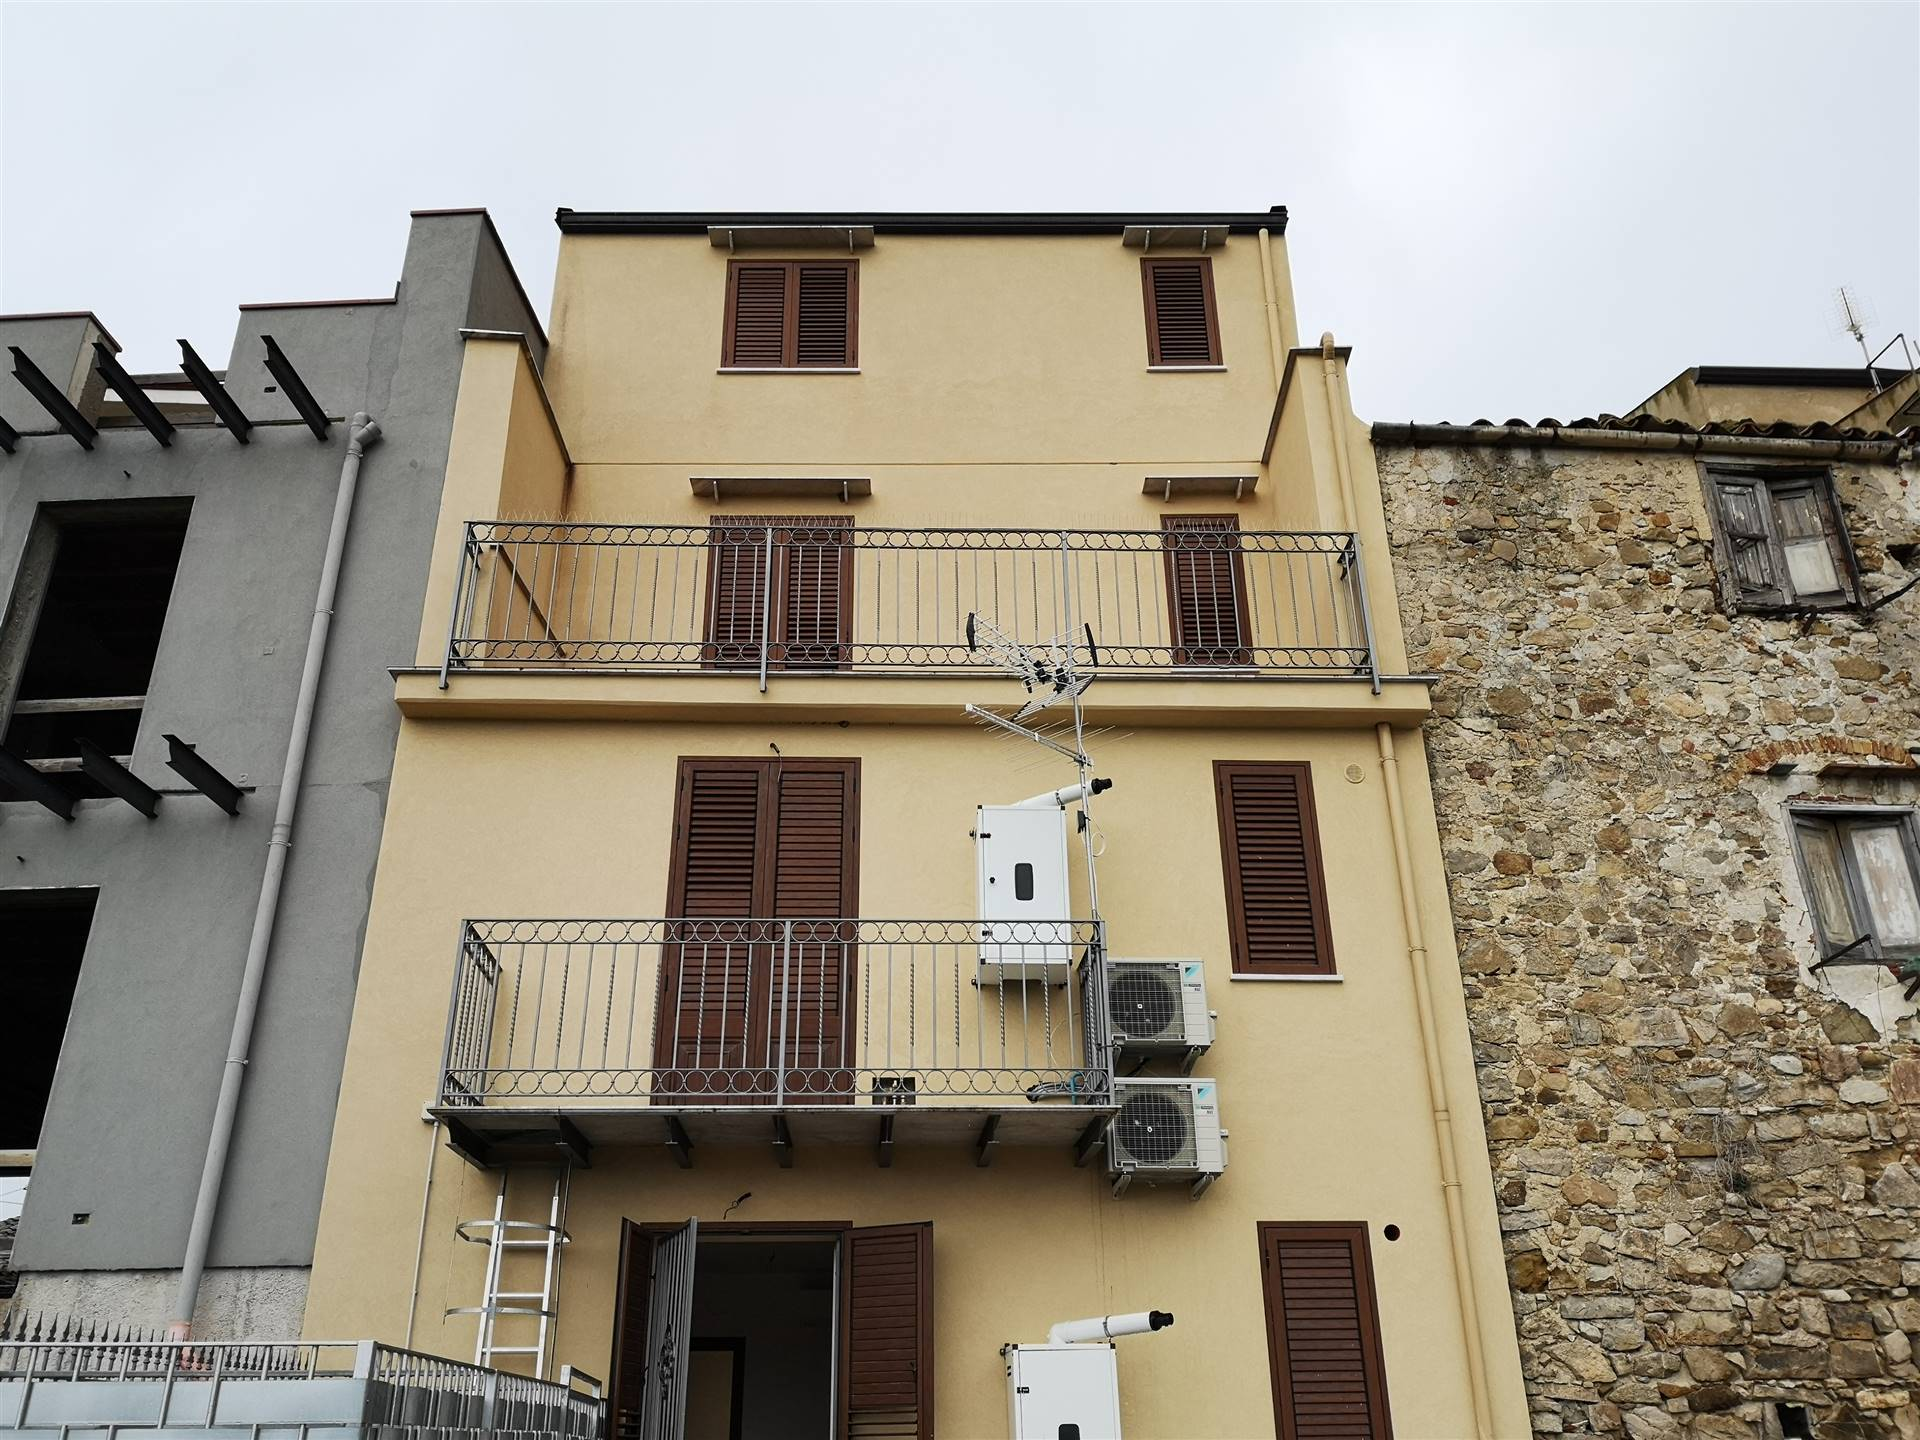 CACCAMO, Apartment for rent of 50 Sq. mt., Restored, Heating Individual heating system, Energetic class: G, Epi: 137,8 kwh/m2 year, composed by: 3